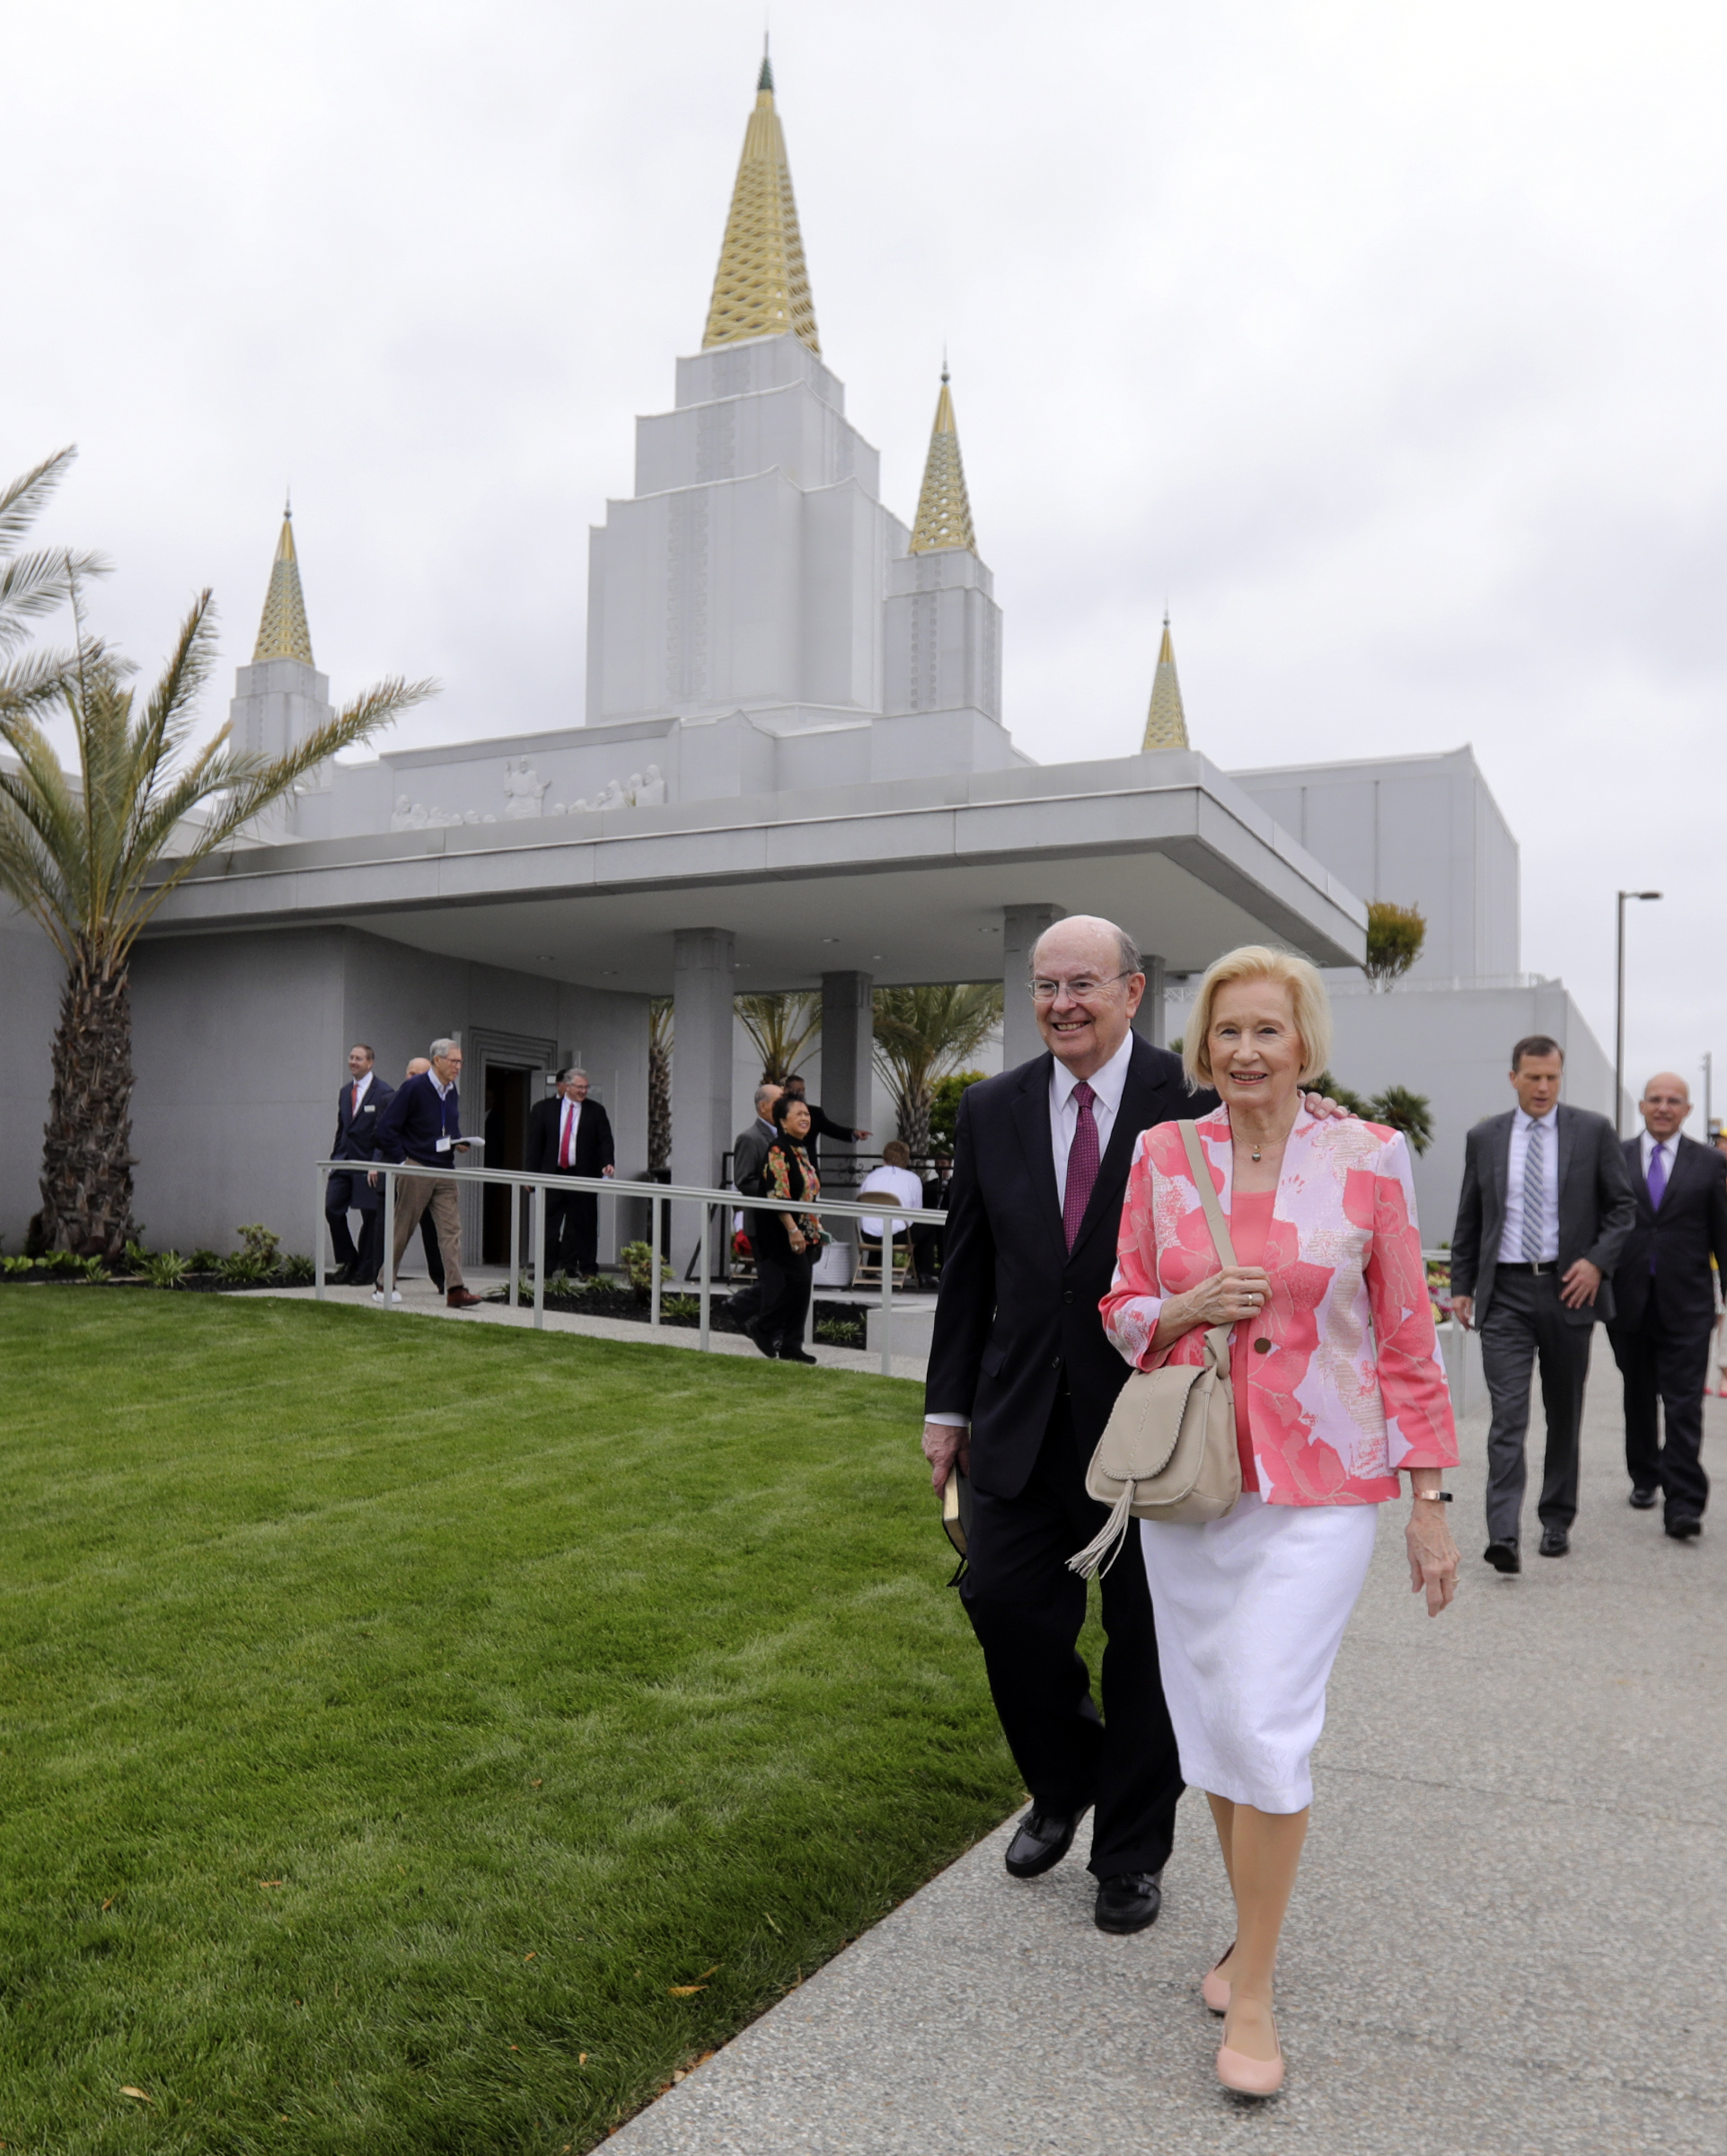 Elder Quentin L. Cook, of the Quorum of the Twelve Apostles, and his wife, Sister Mary G. Cook, finish a tour of the newly renovated Oakland California Temple, of The Church of Jesus Christ of Latter-day Saints, in Oakland, Calif., on Monday, May 6, 2019.